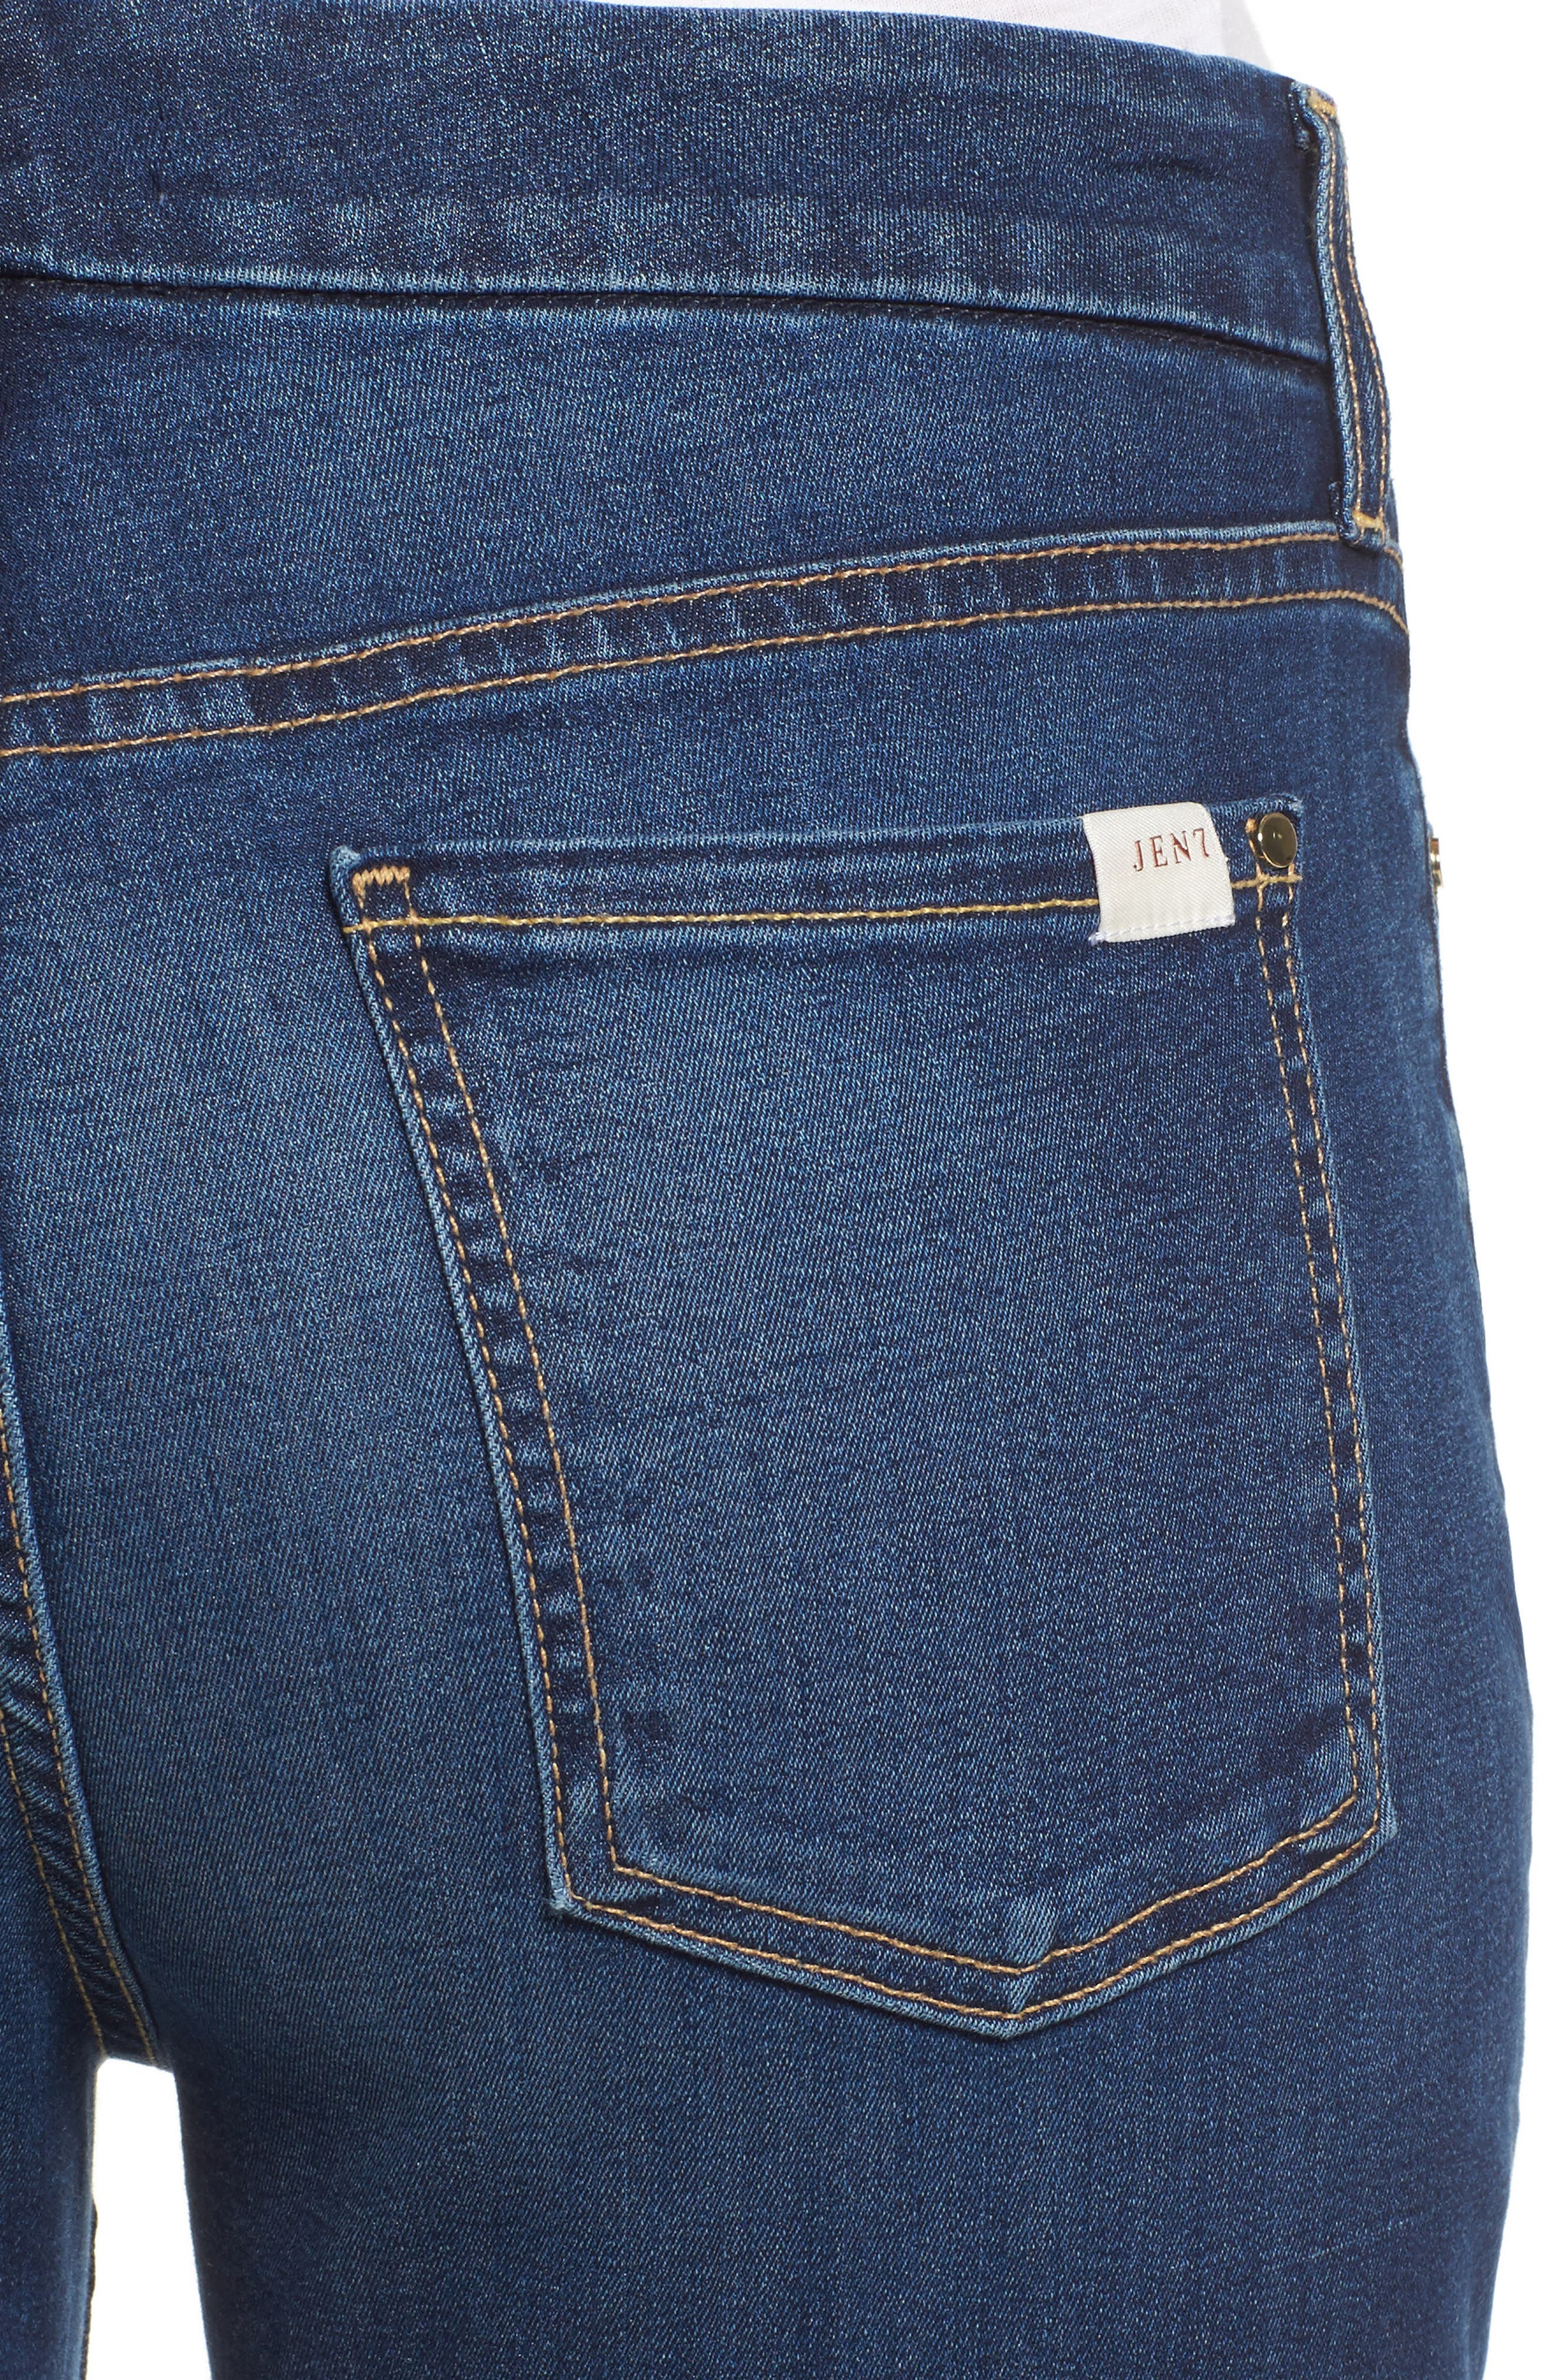 JEN7 BY 7 FOR ALL MANKIND, Slim Bootcut Jeans, Alternate thumbnail 4, color, RICHE TOUCH MEDIUM BLUE